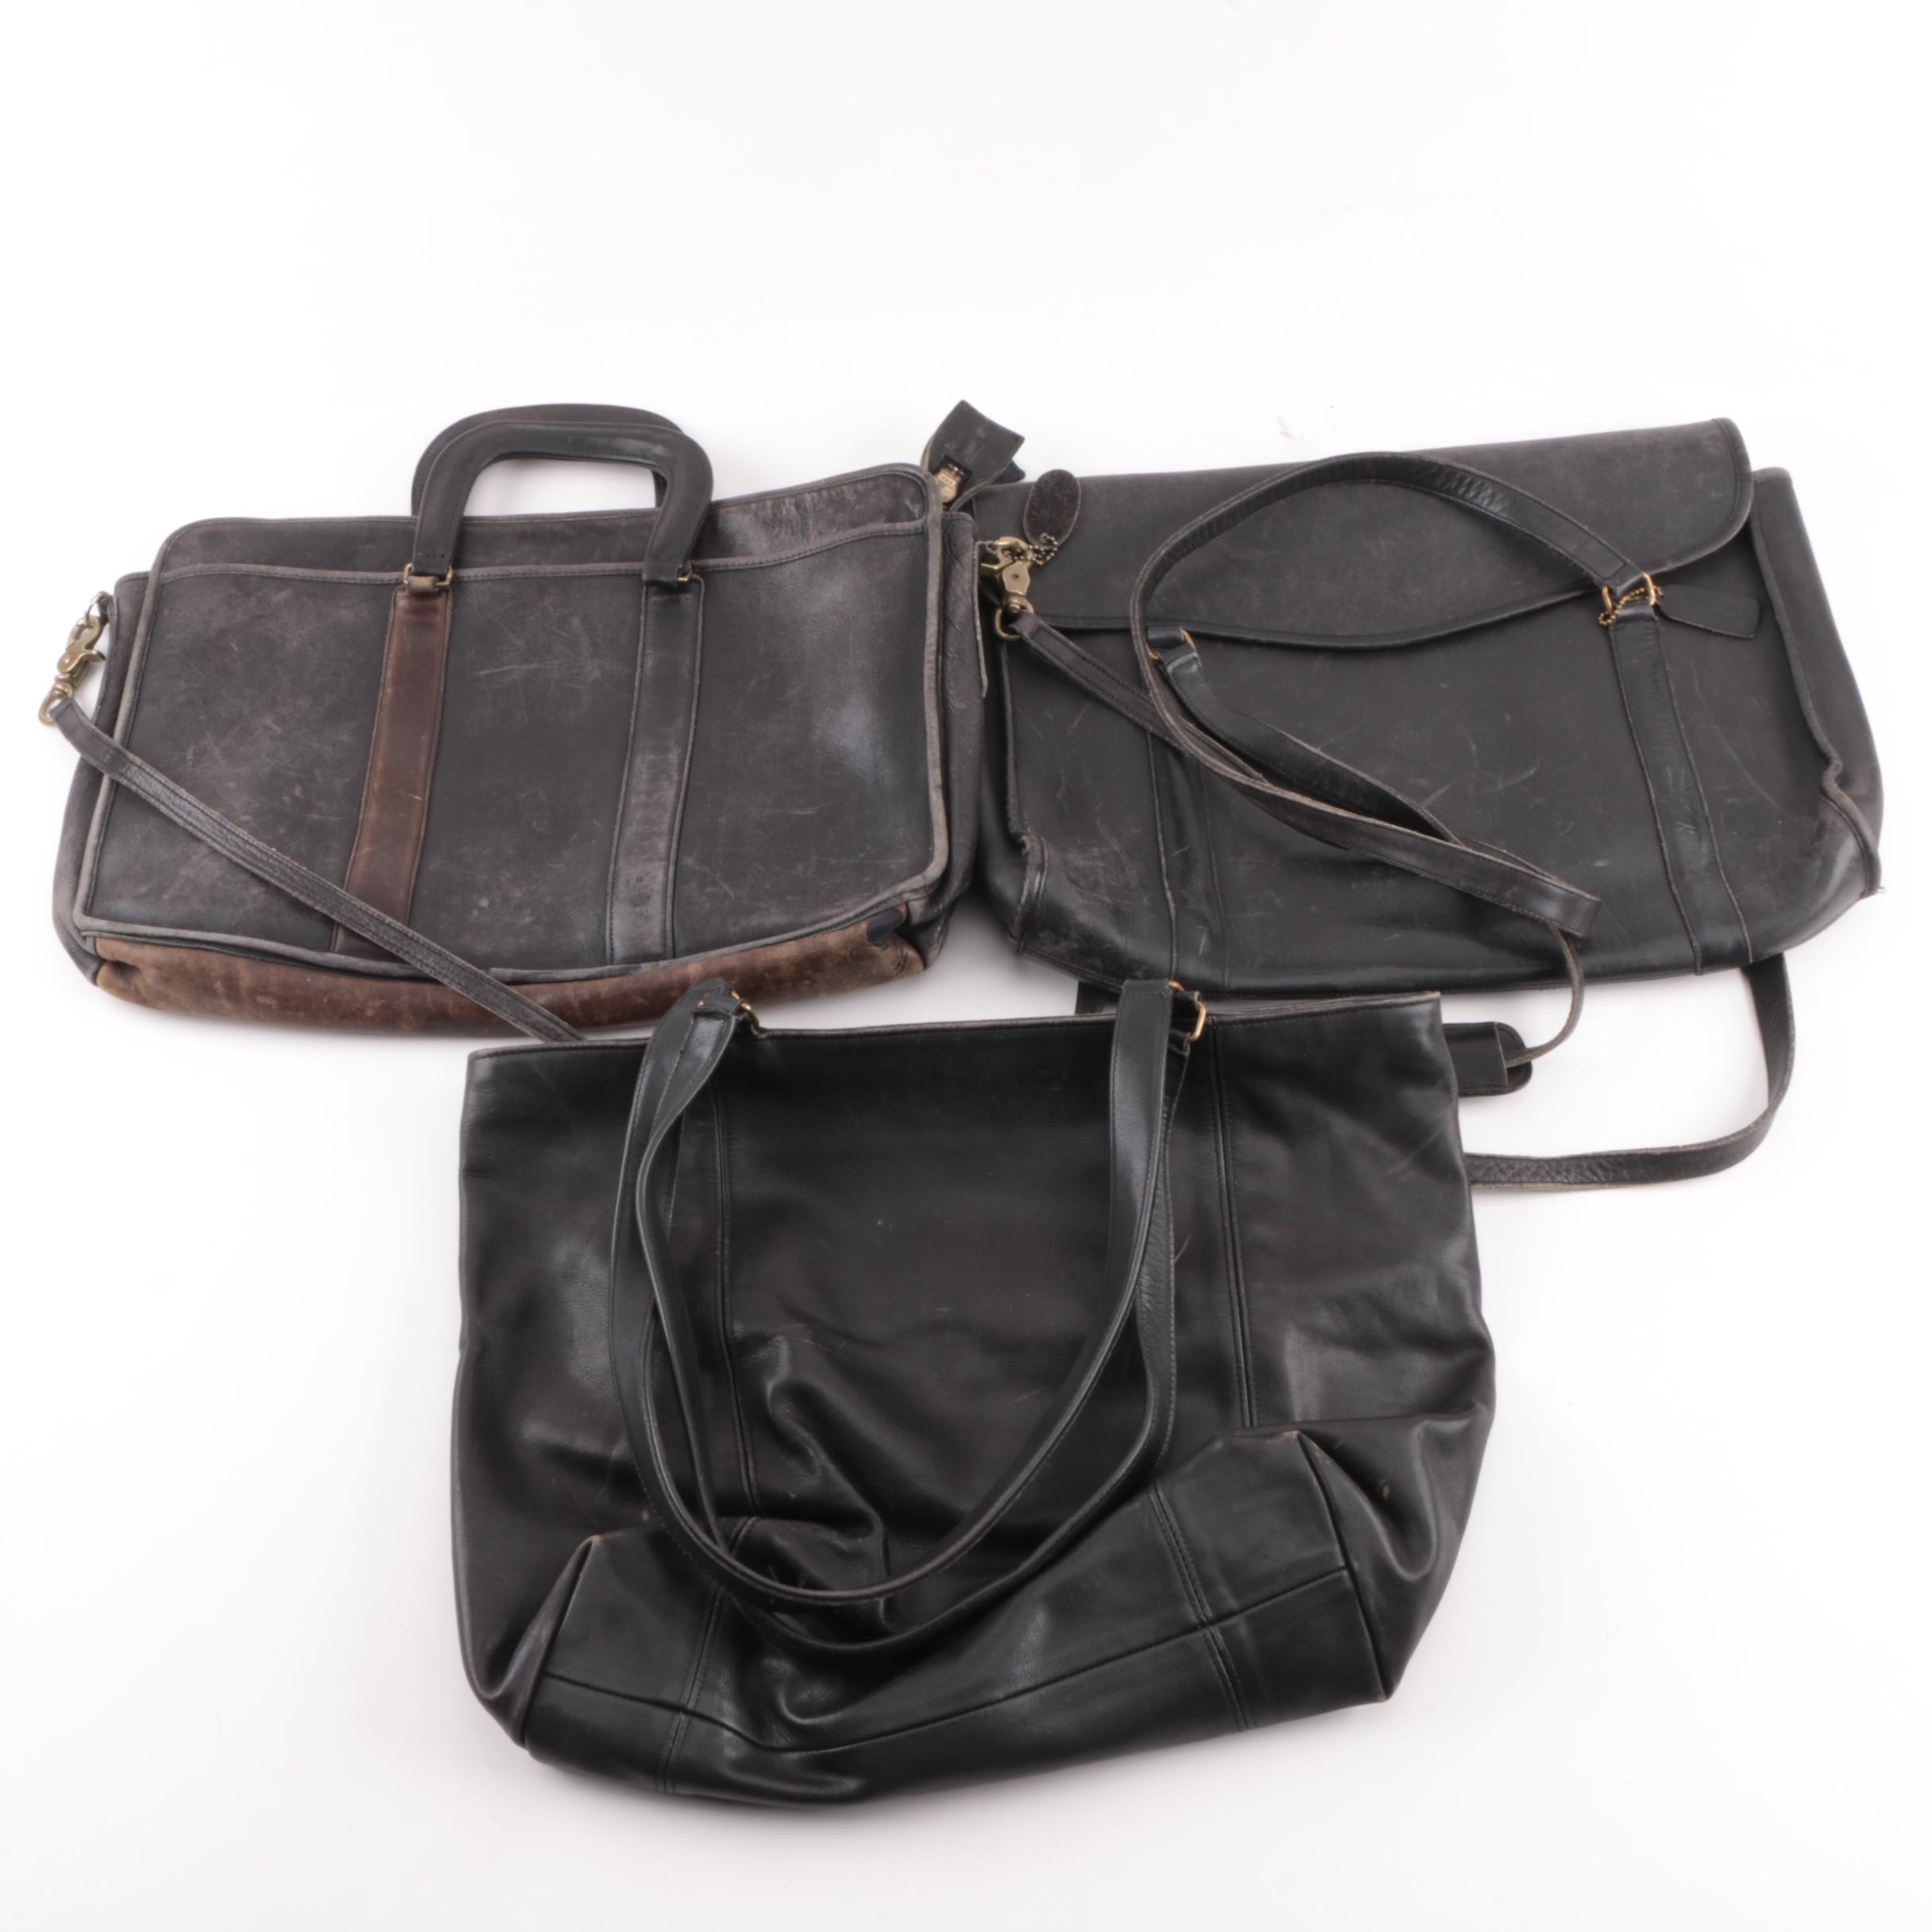 Vintage Coach and Harvé Benard Black Leather Briefcases and Tote Bag